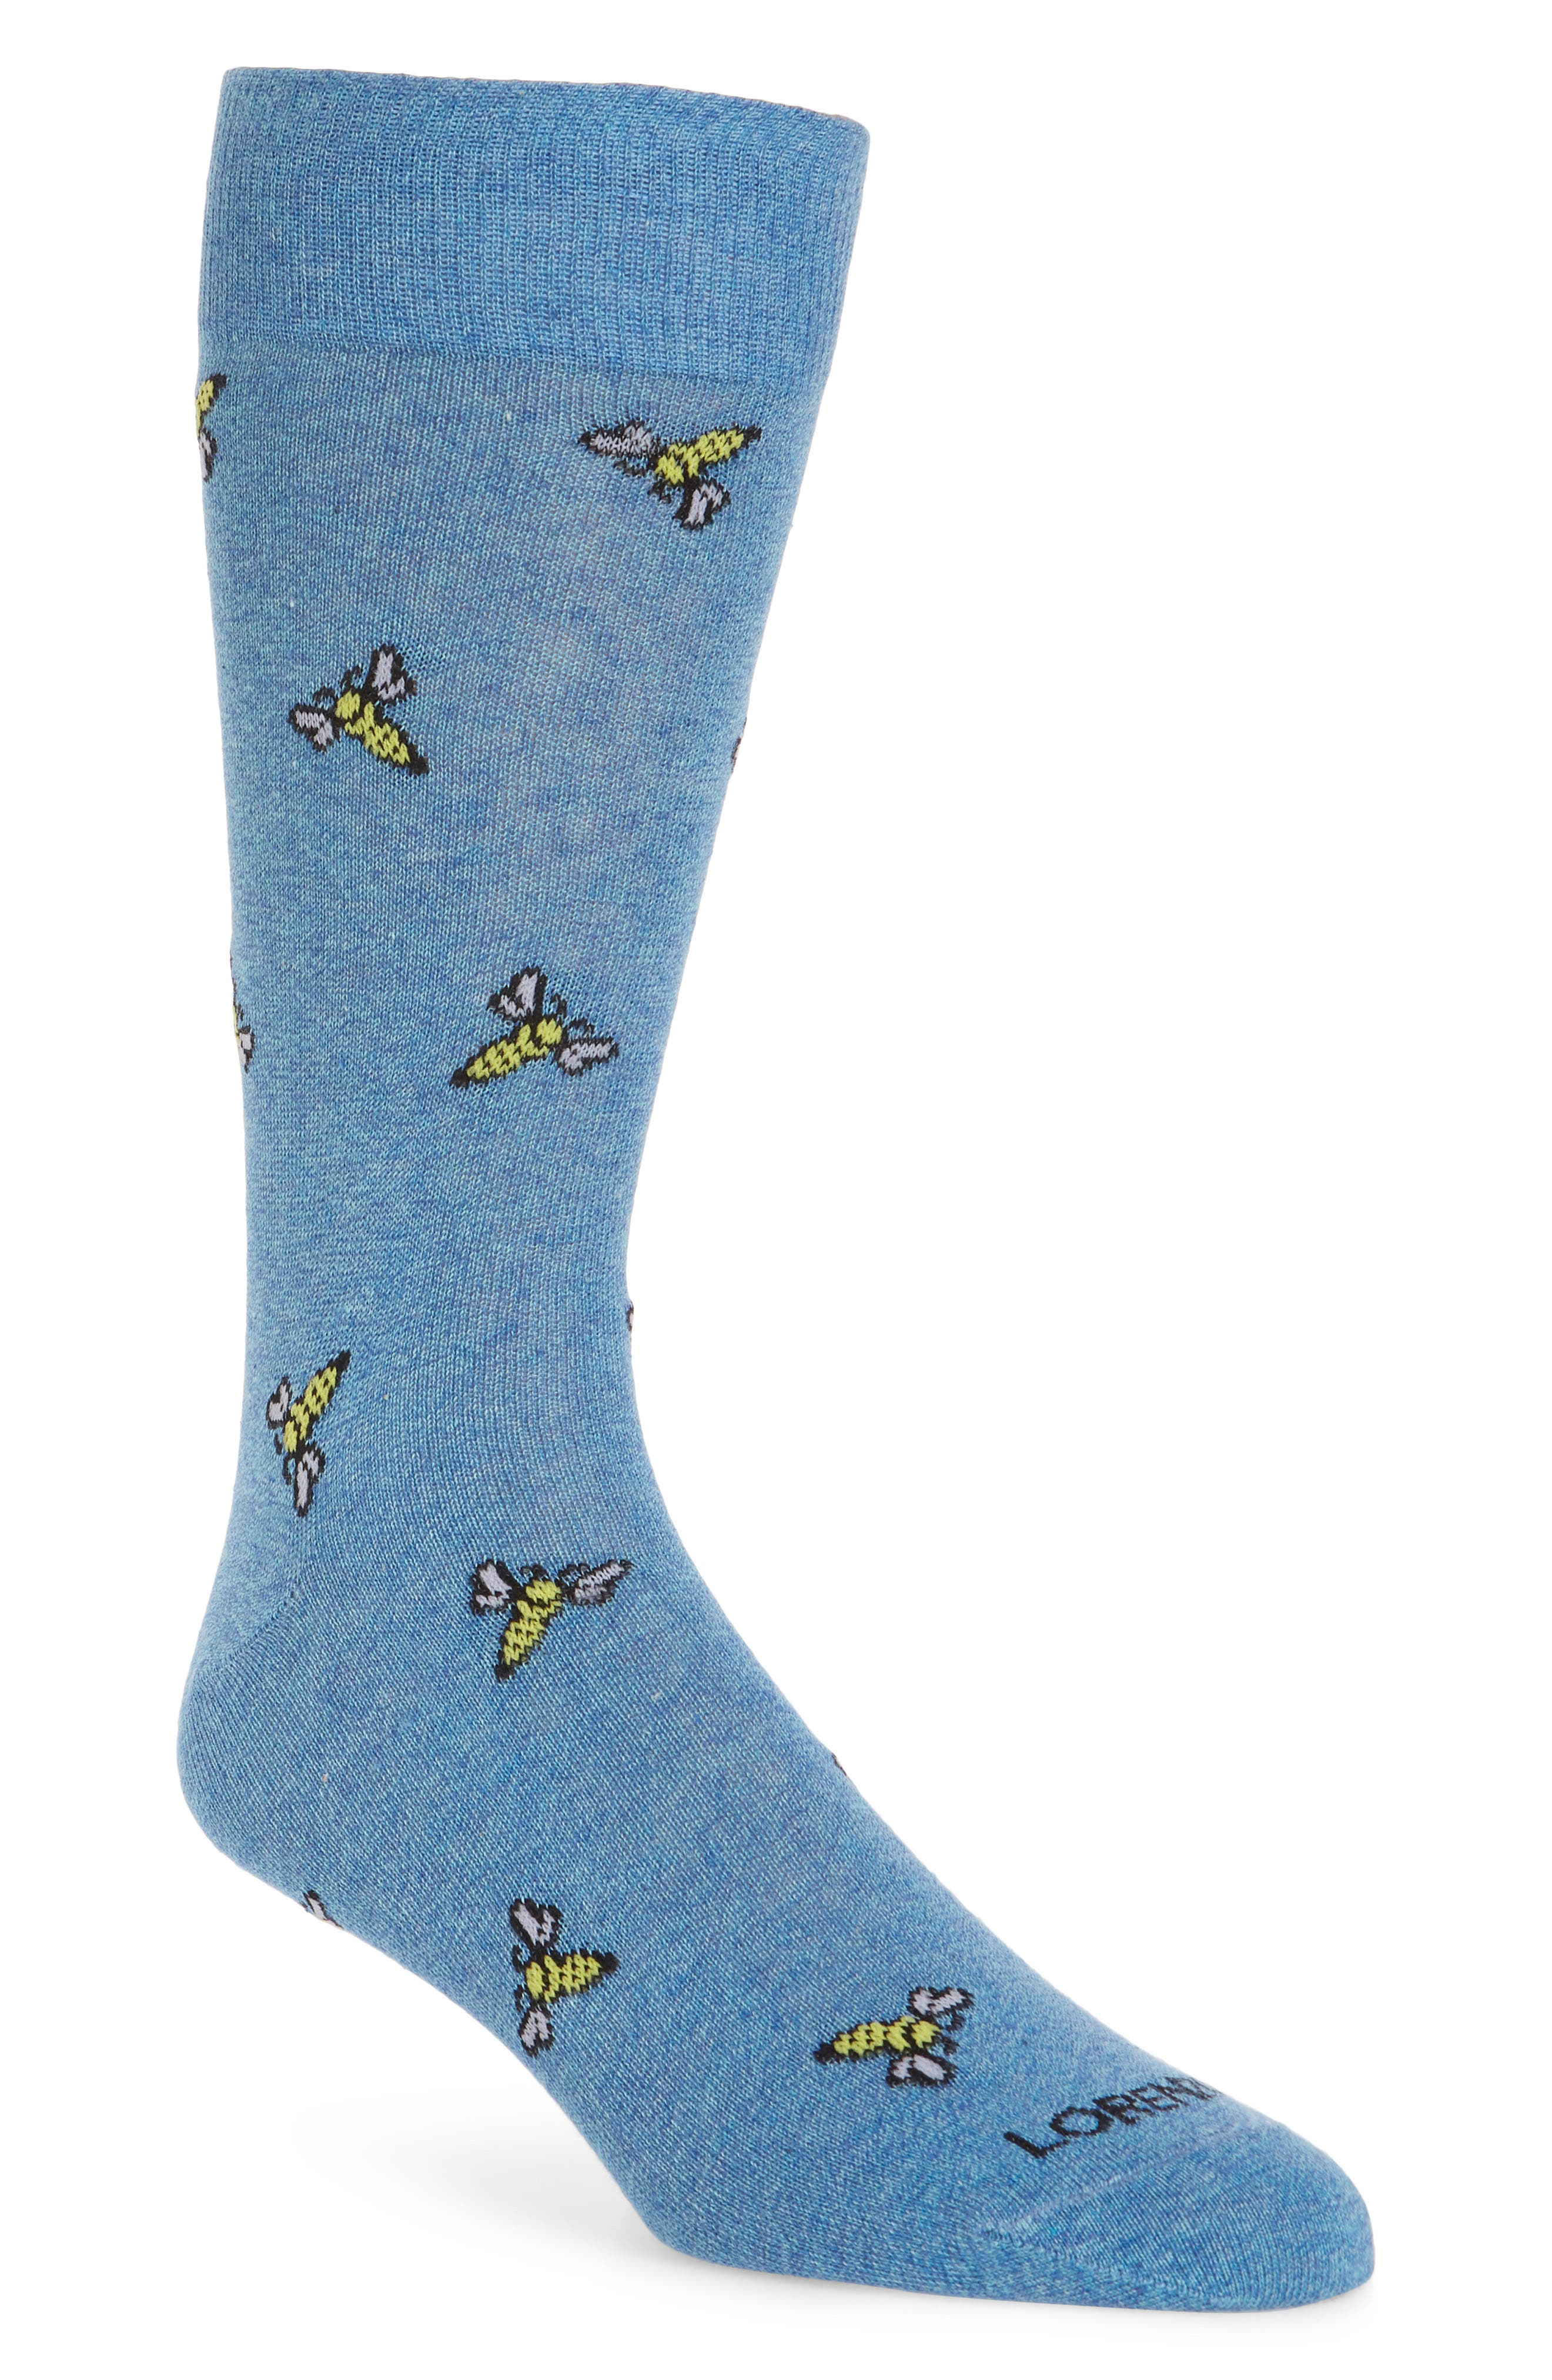 Bees Crew Socks,                             Main thumbnail 1, color,                             Light Blue